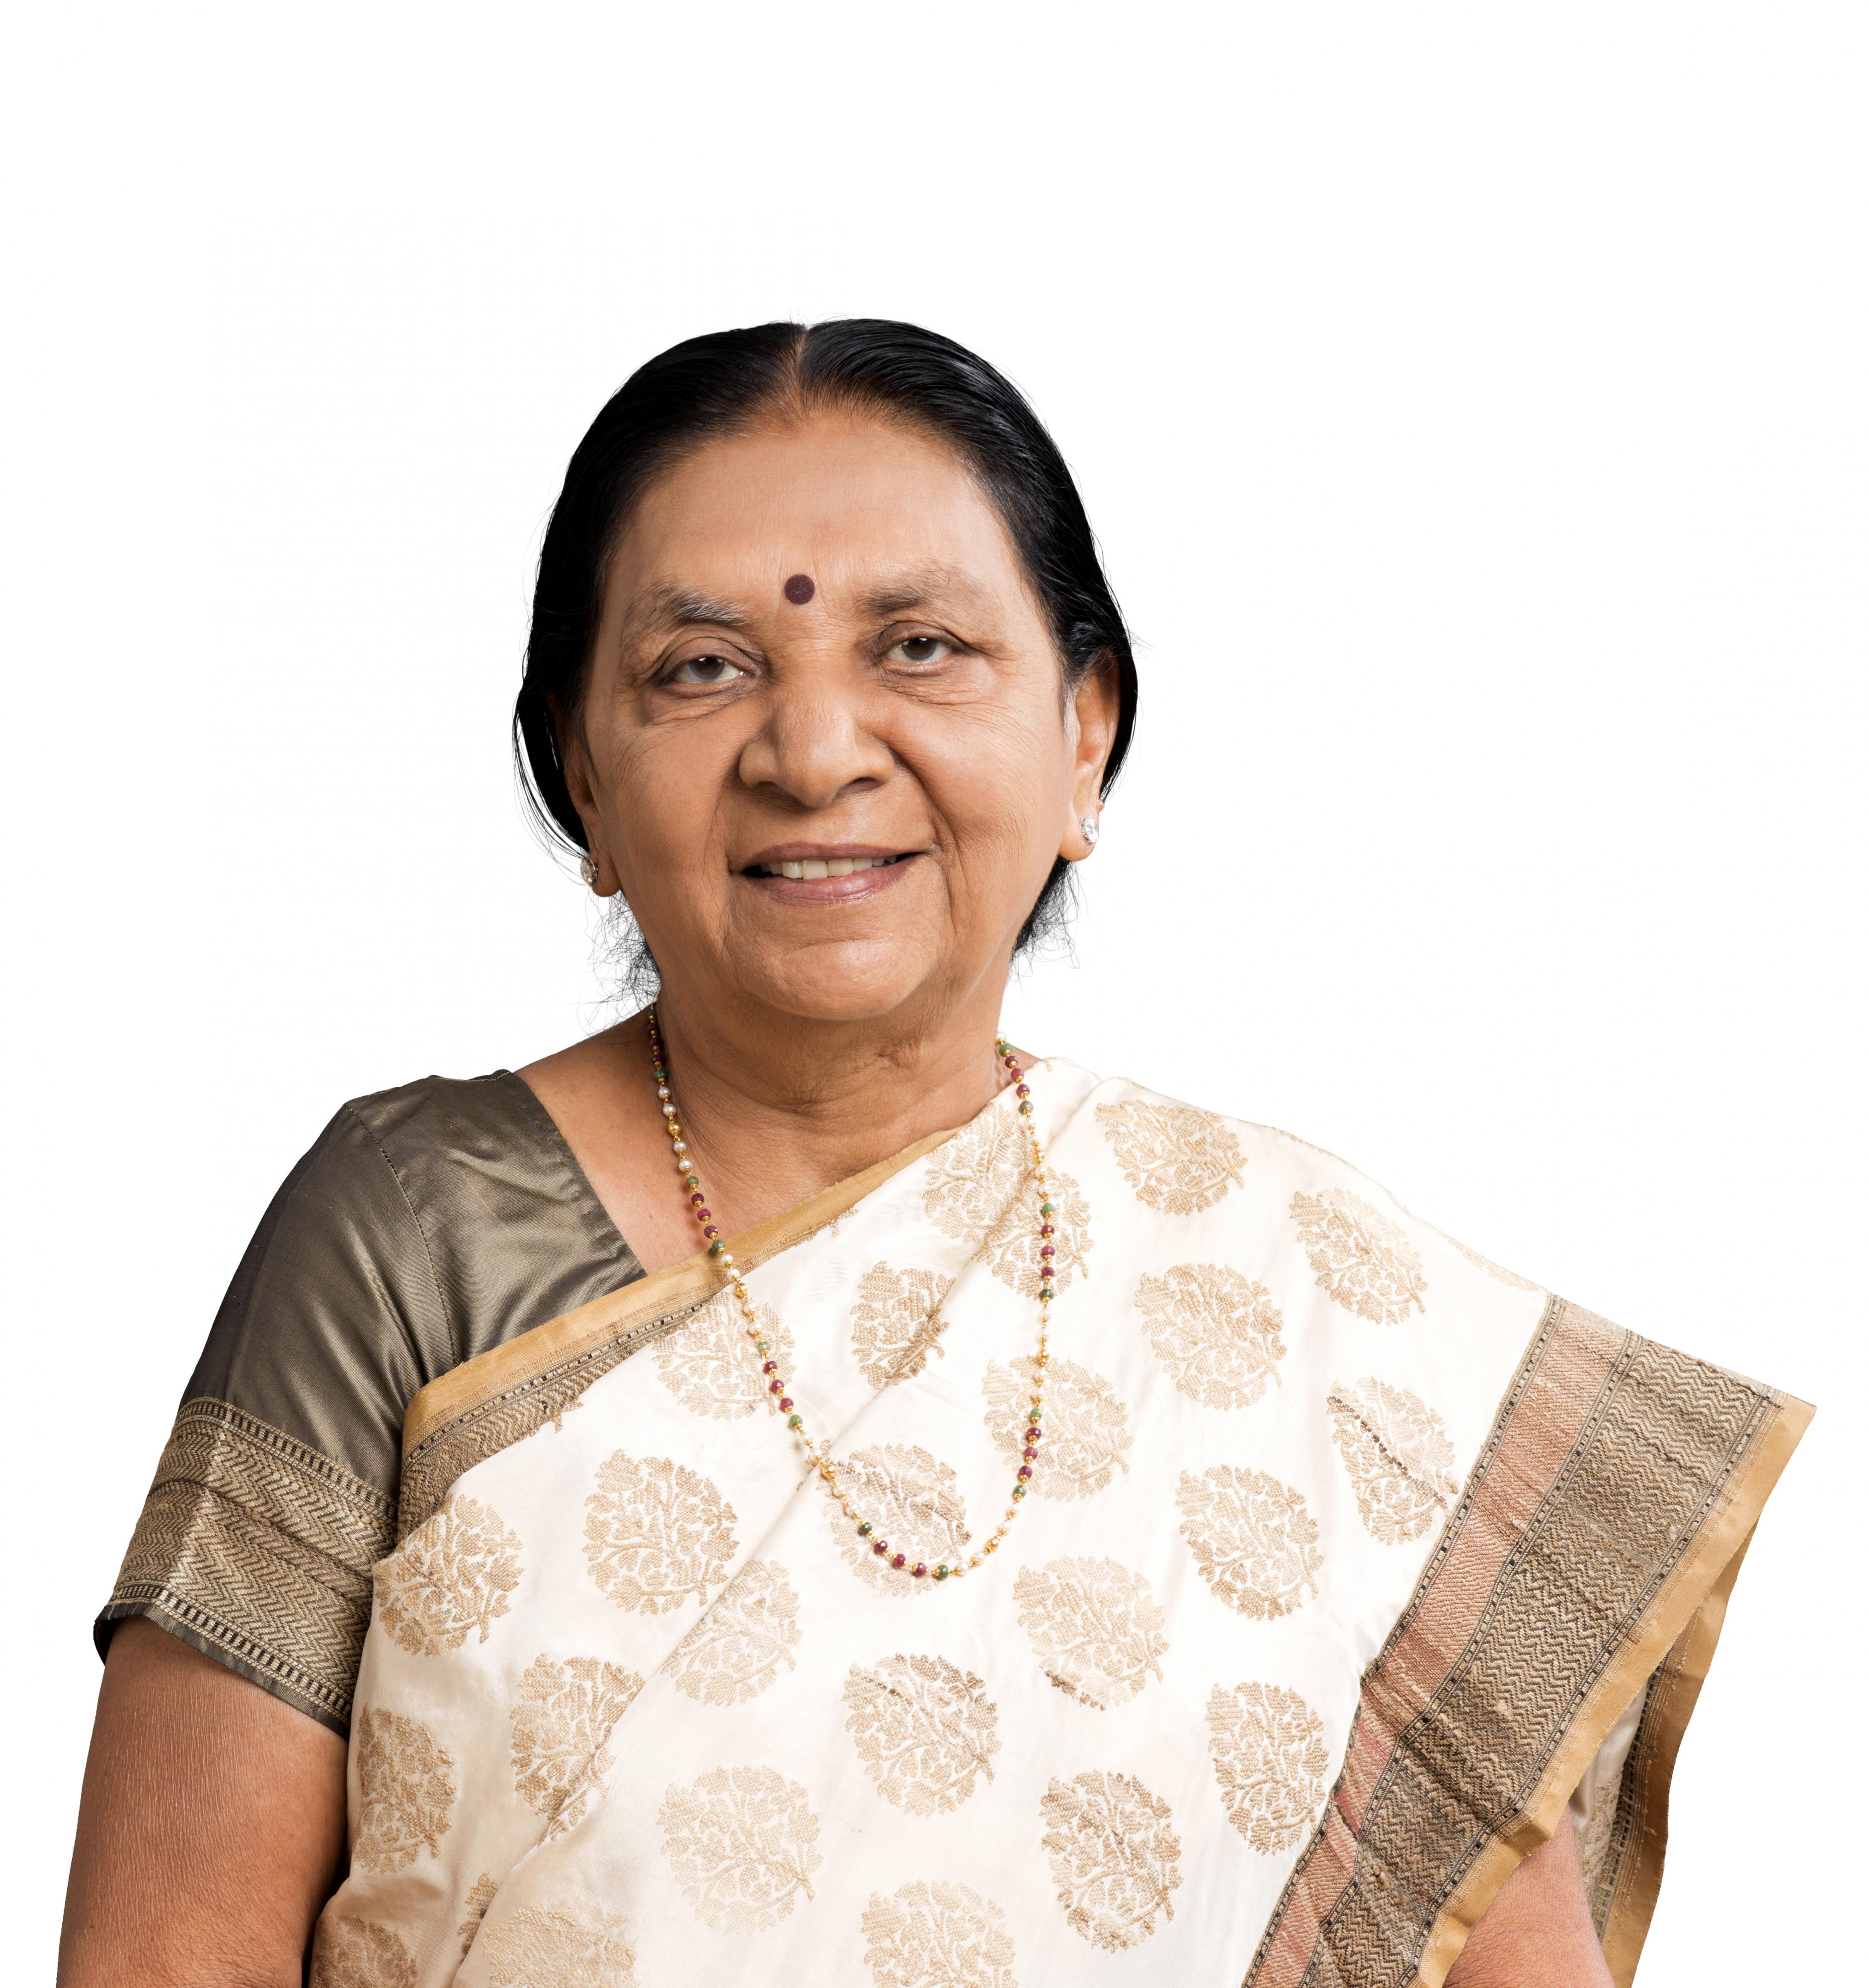 Blessings From Honourable Chief Minister Smt. Anandiben Patel